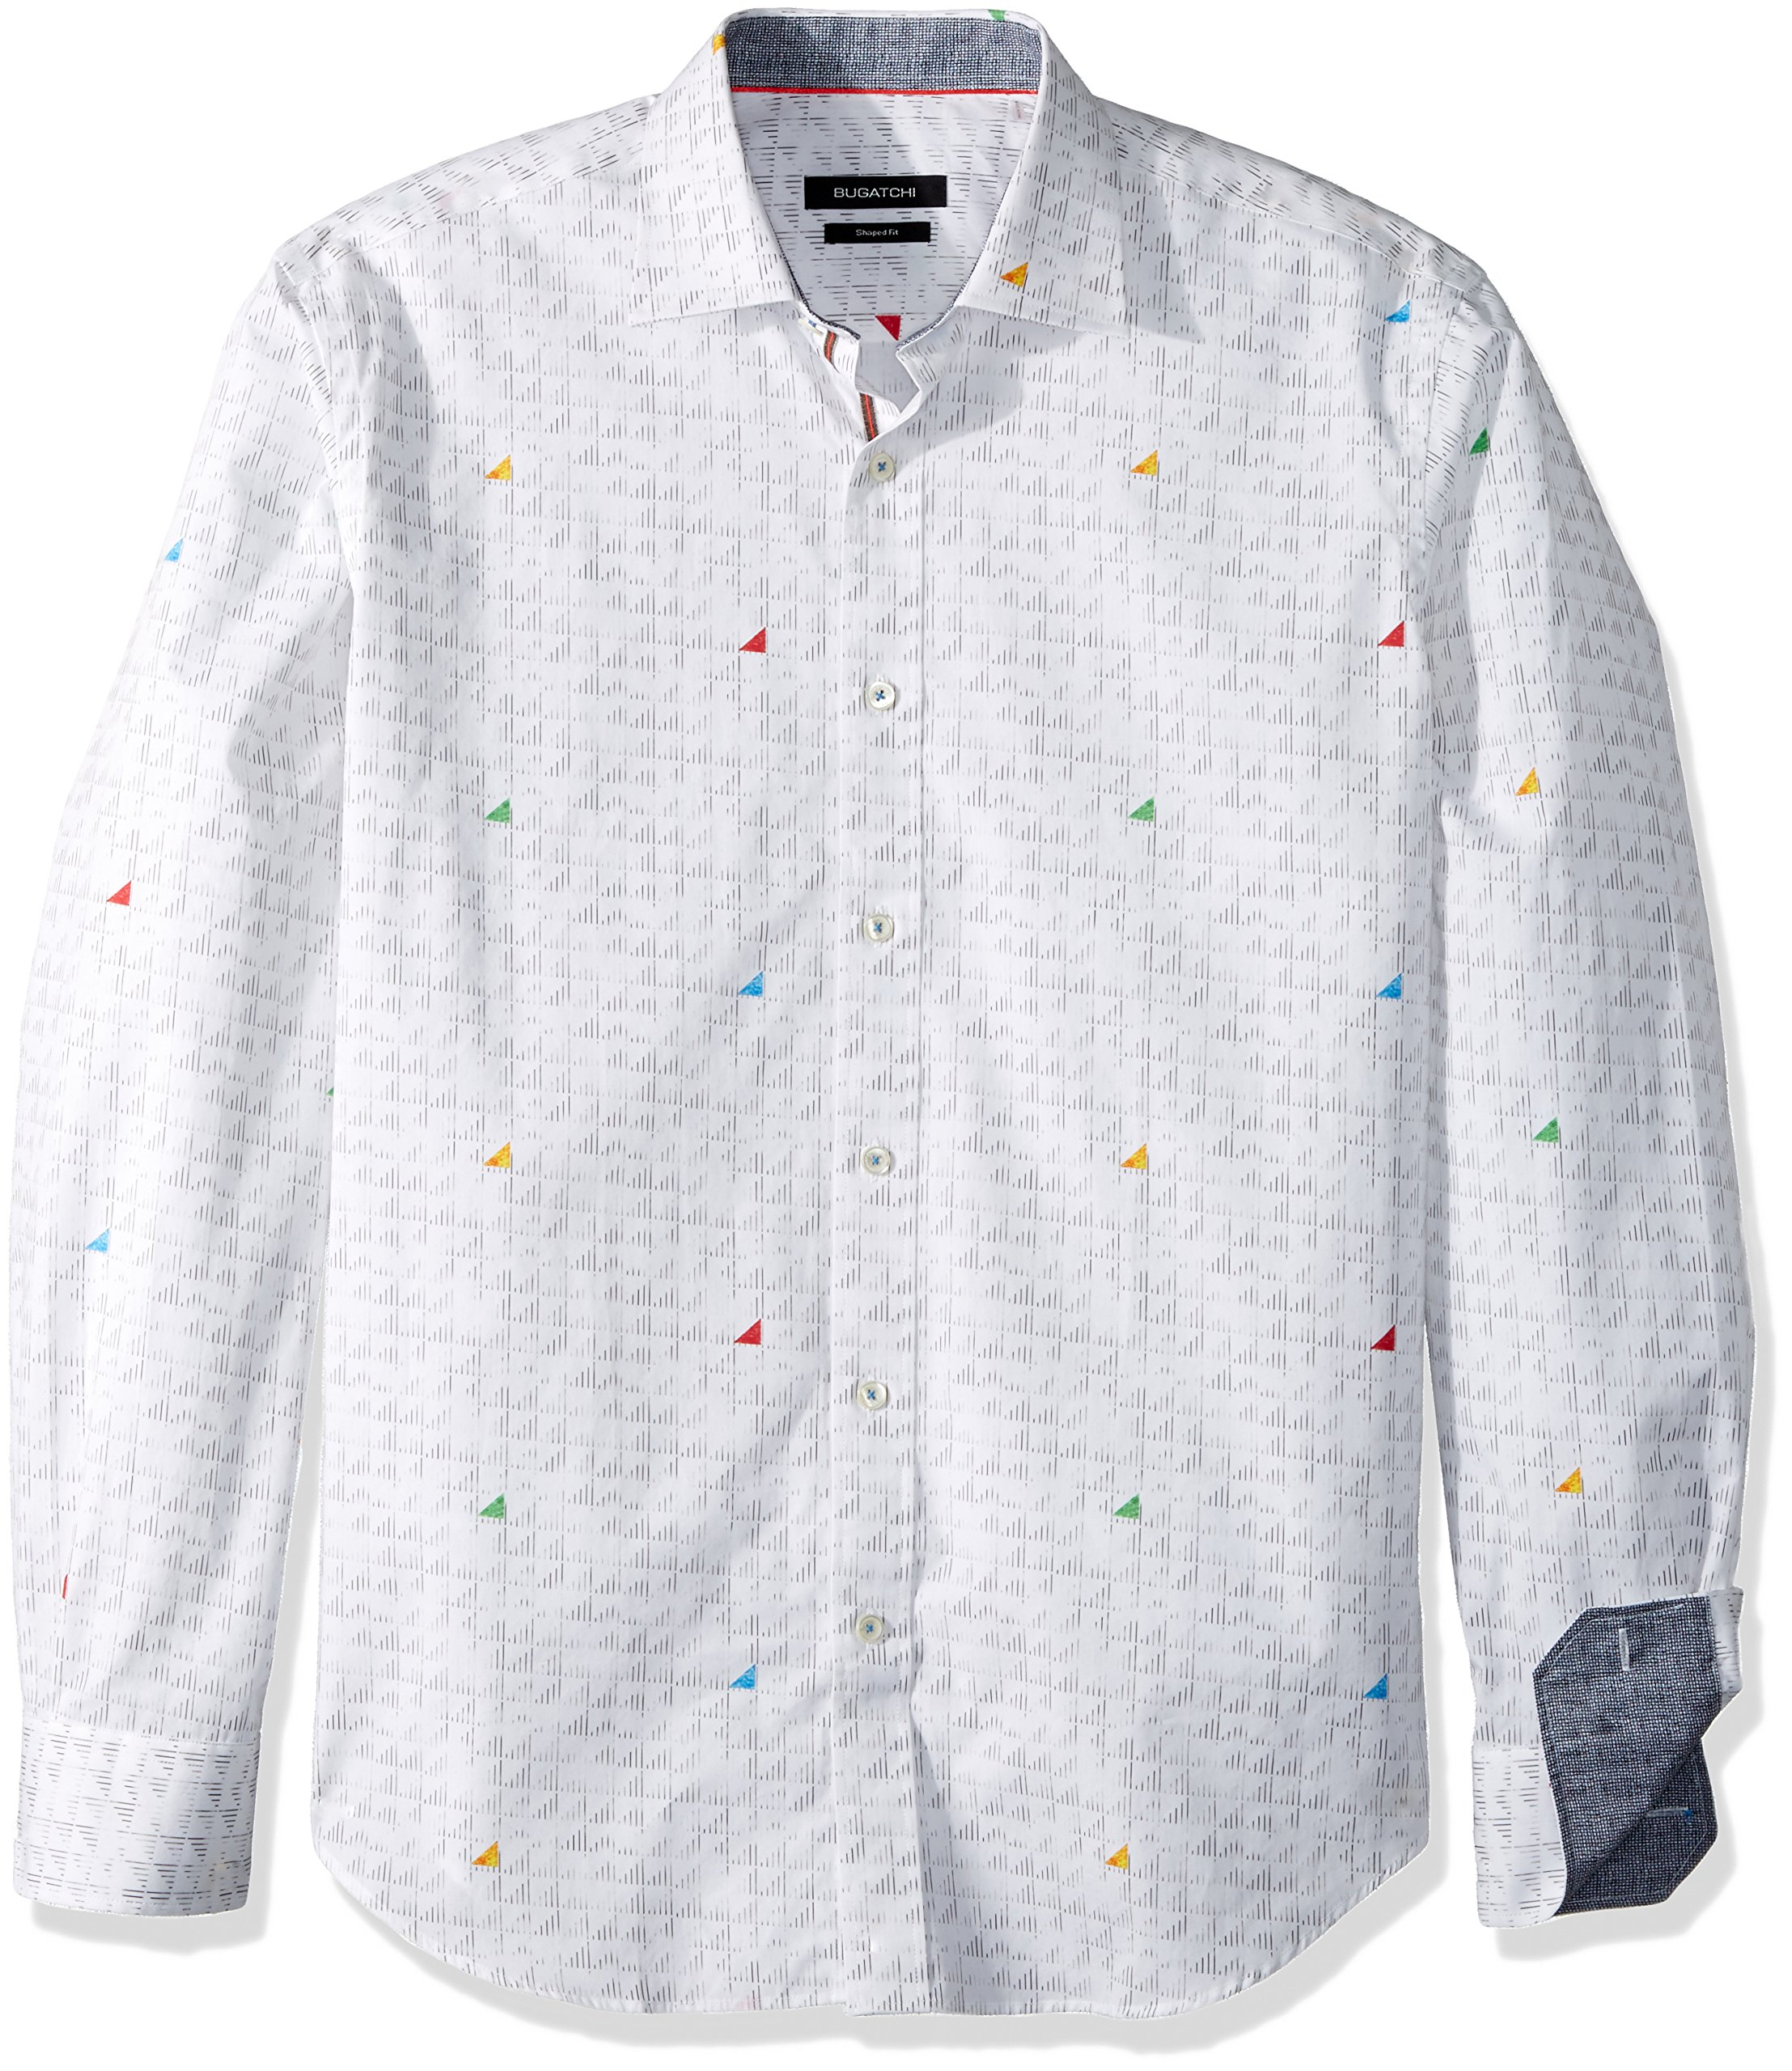 BUGATCHI Men's Cotton Tapered Fit Long Sleeve Shirt, White, L